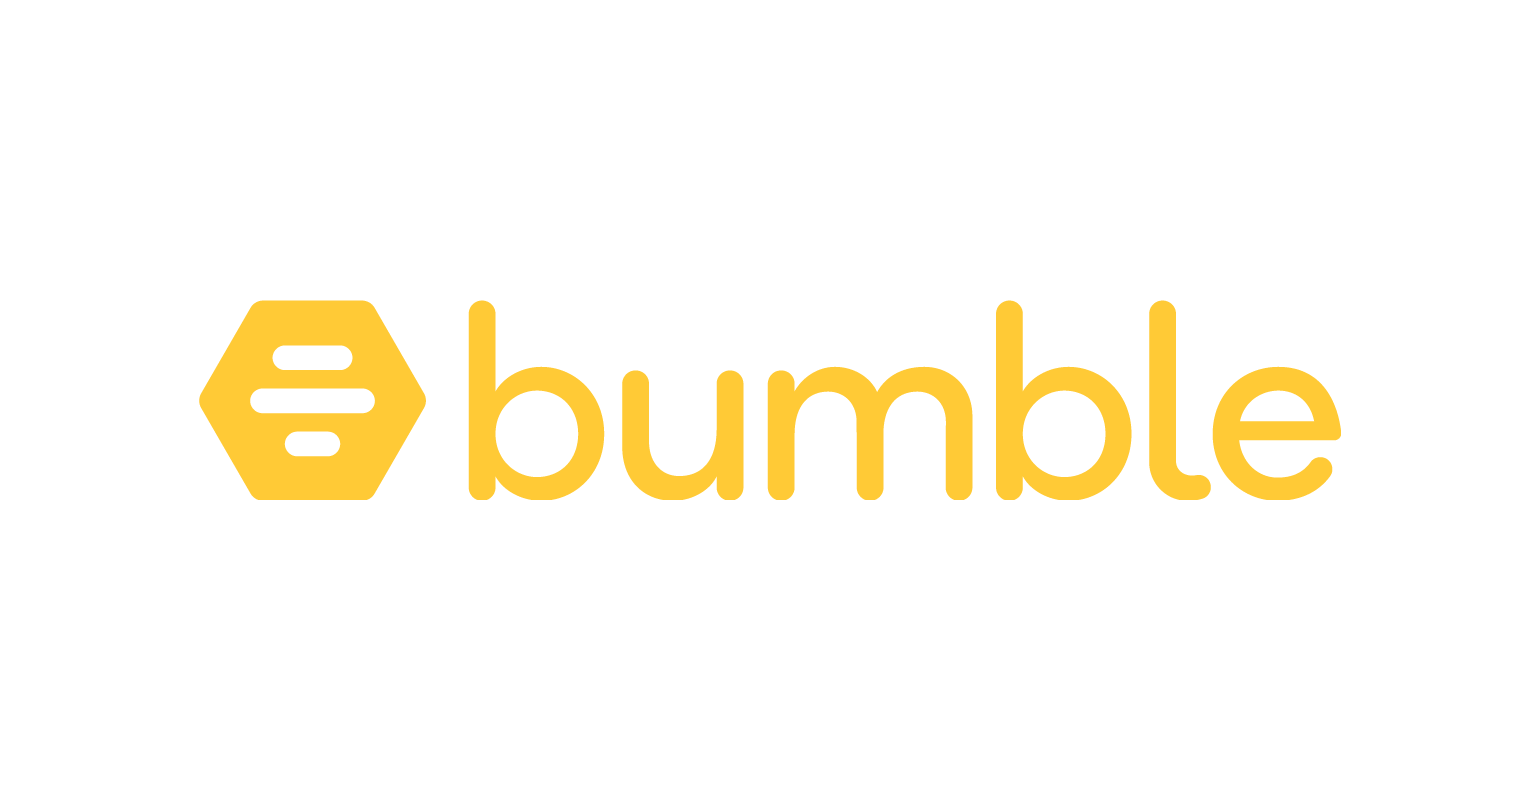 Where shall we meet? At Bumble's new restaurant   Restaurant Hospitality